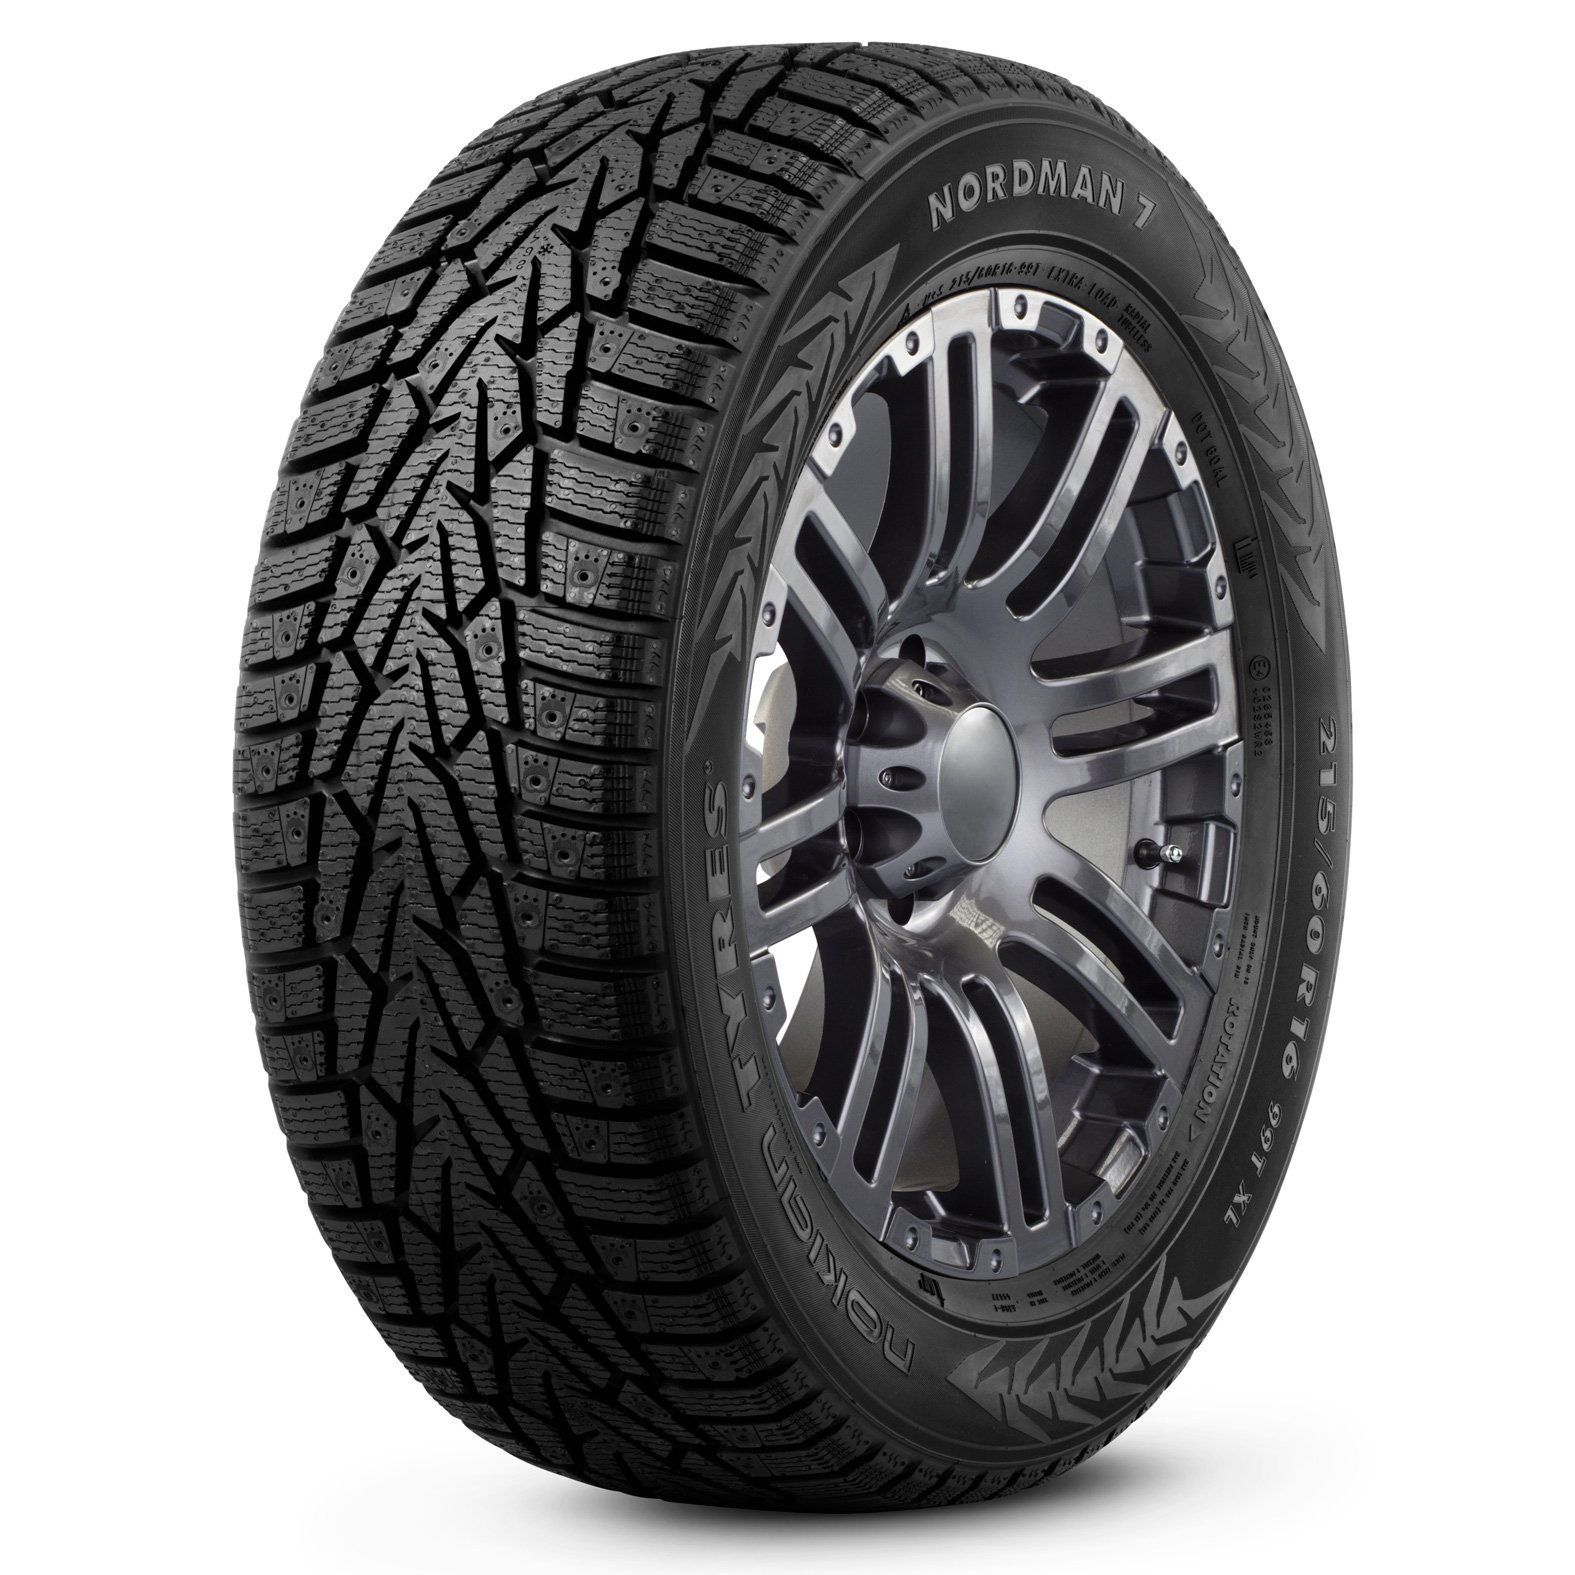 205/55R16 94T XL Nokian Nordman 7 Non-Studded Winter Tire